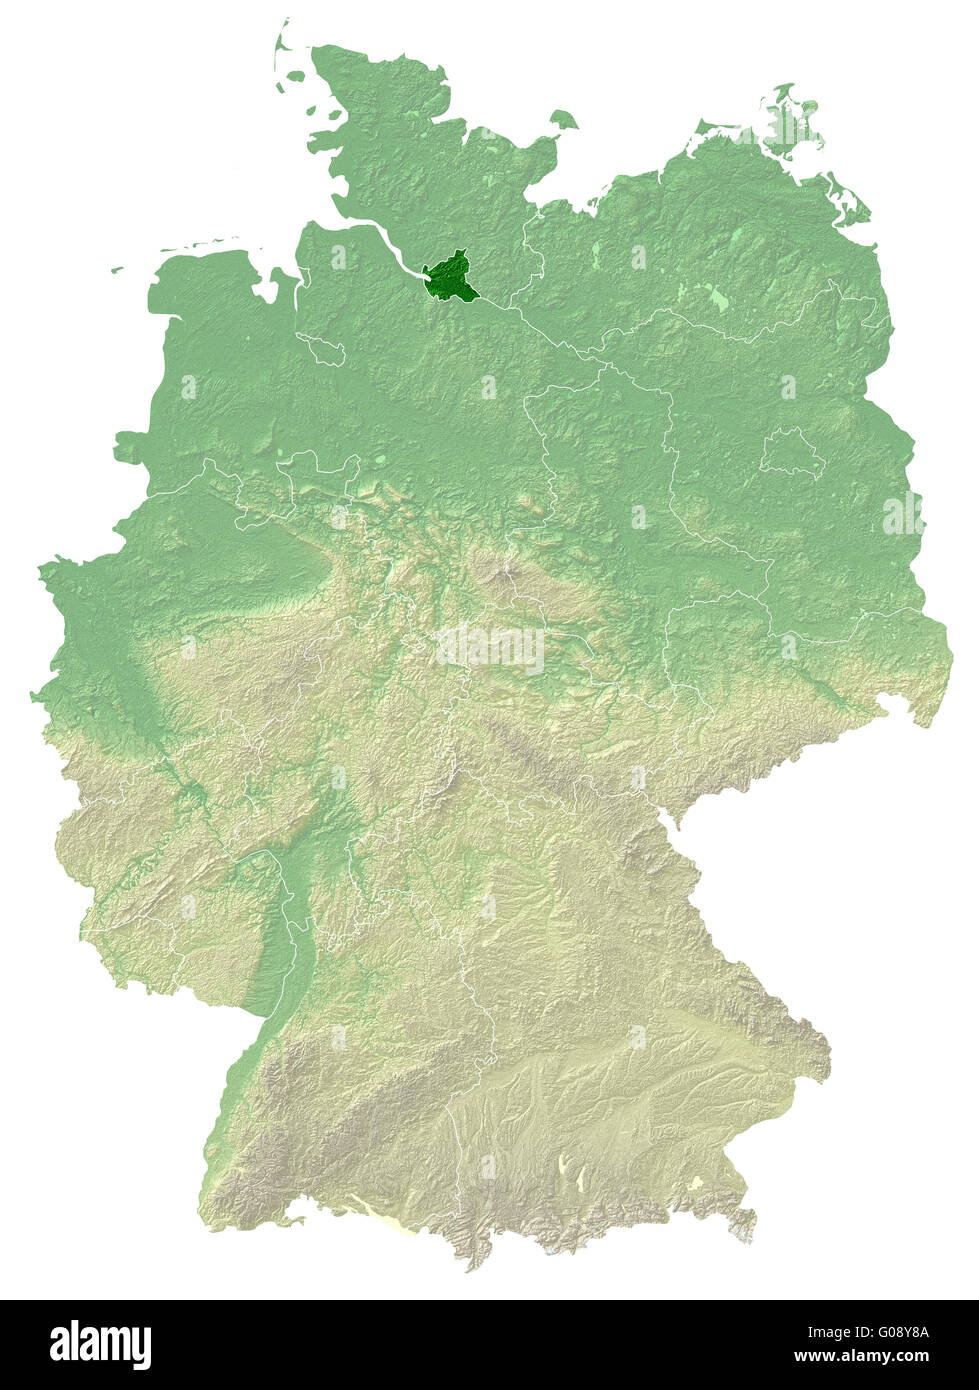 Hamburg - topographical relief map Germany - Stock Image